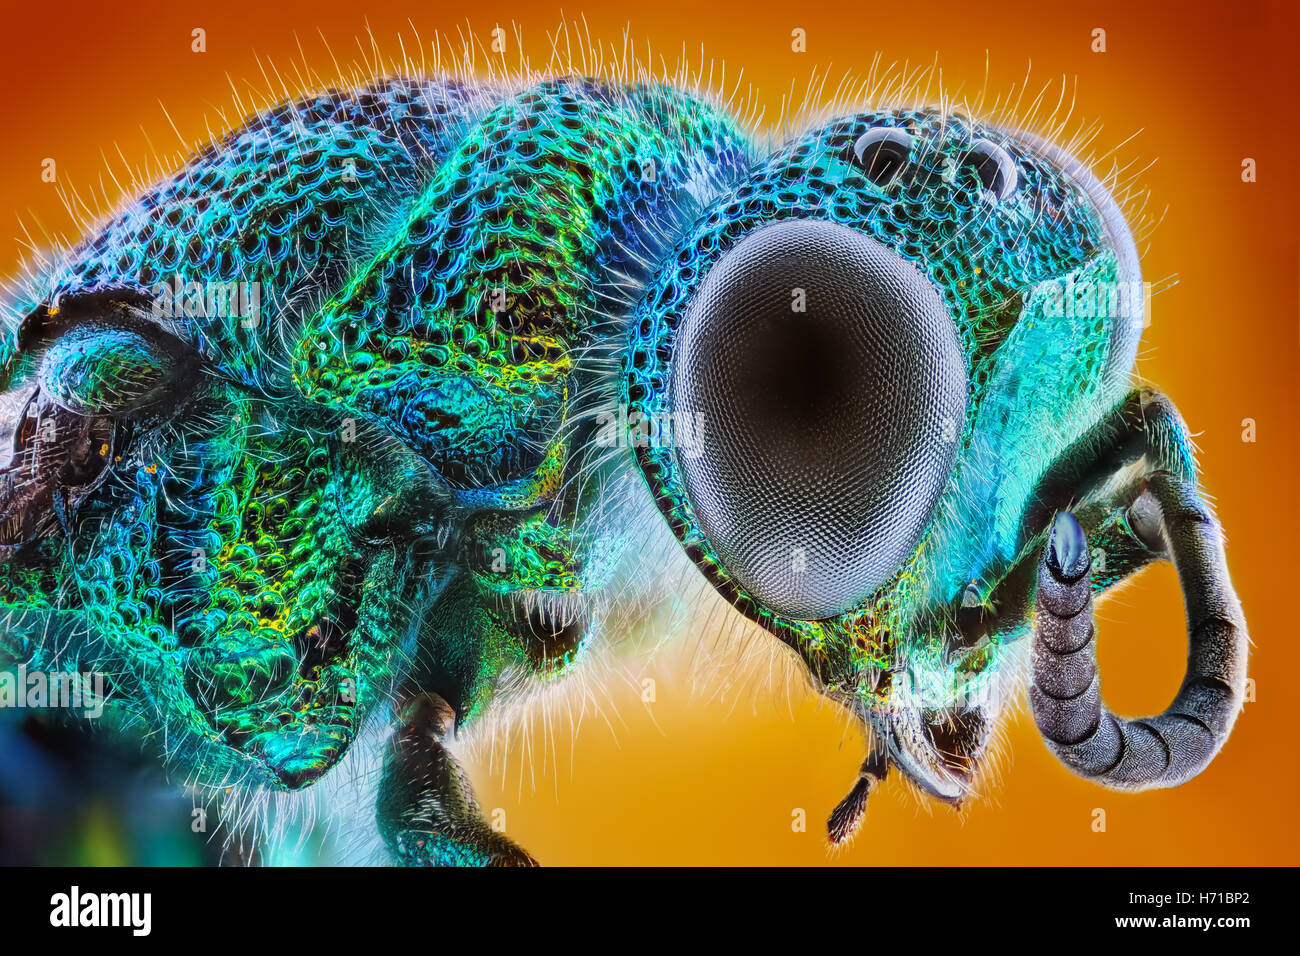 Extreme sharp and detailed study of Chrysis fulgida stacked taken with microscope objective, metallic jewel wasp - Stock Image